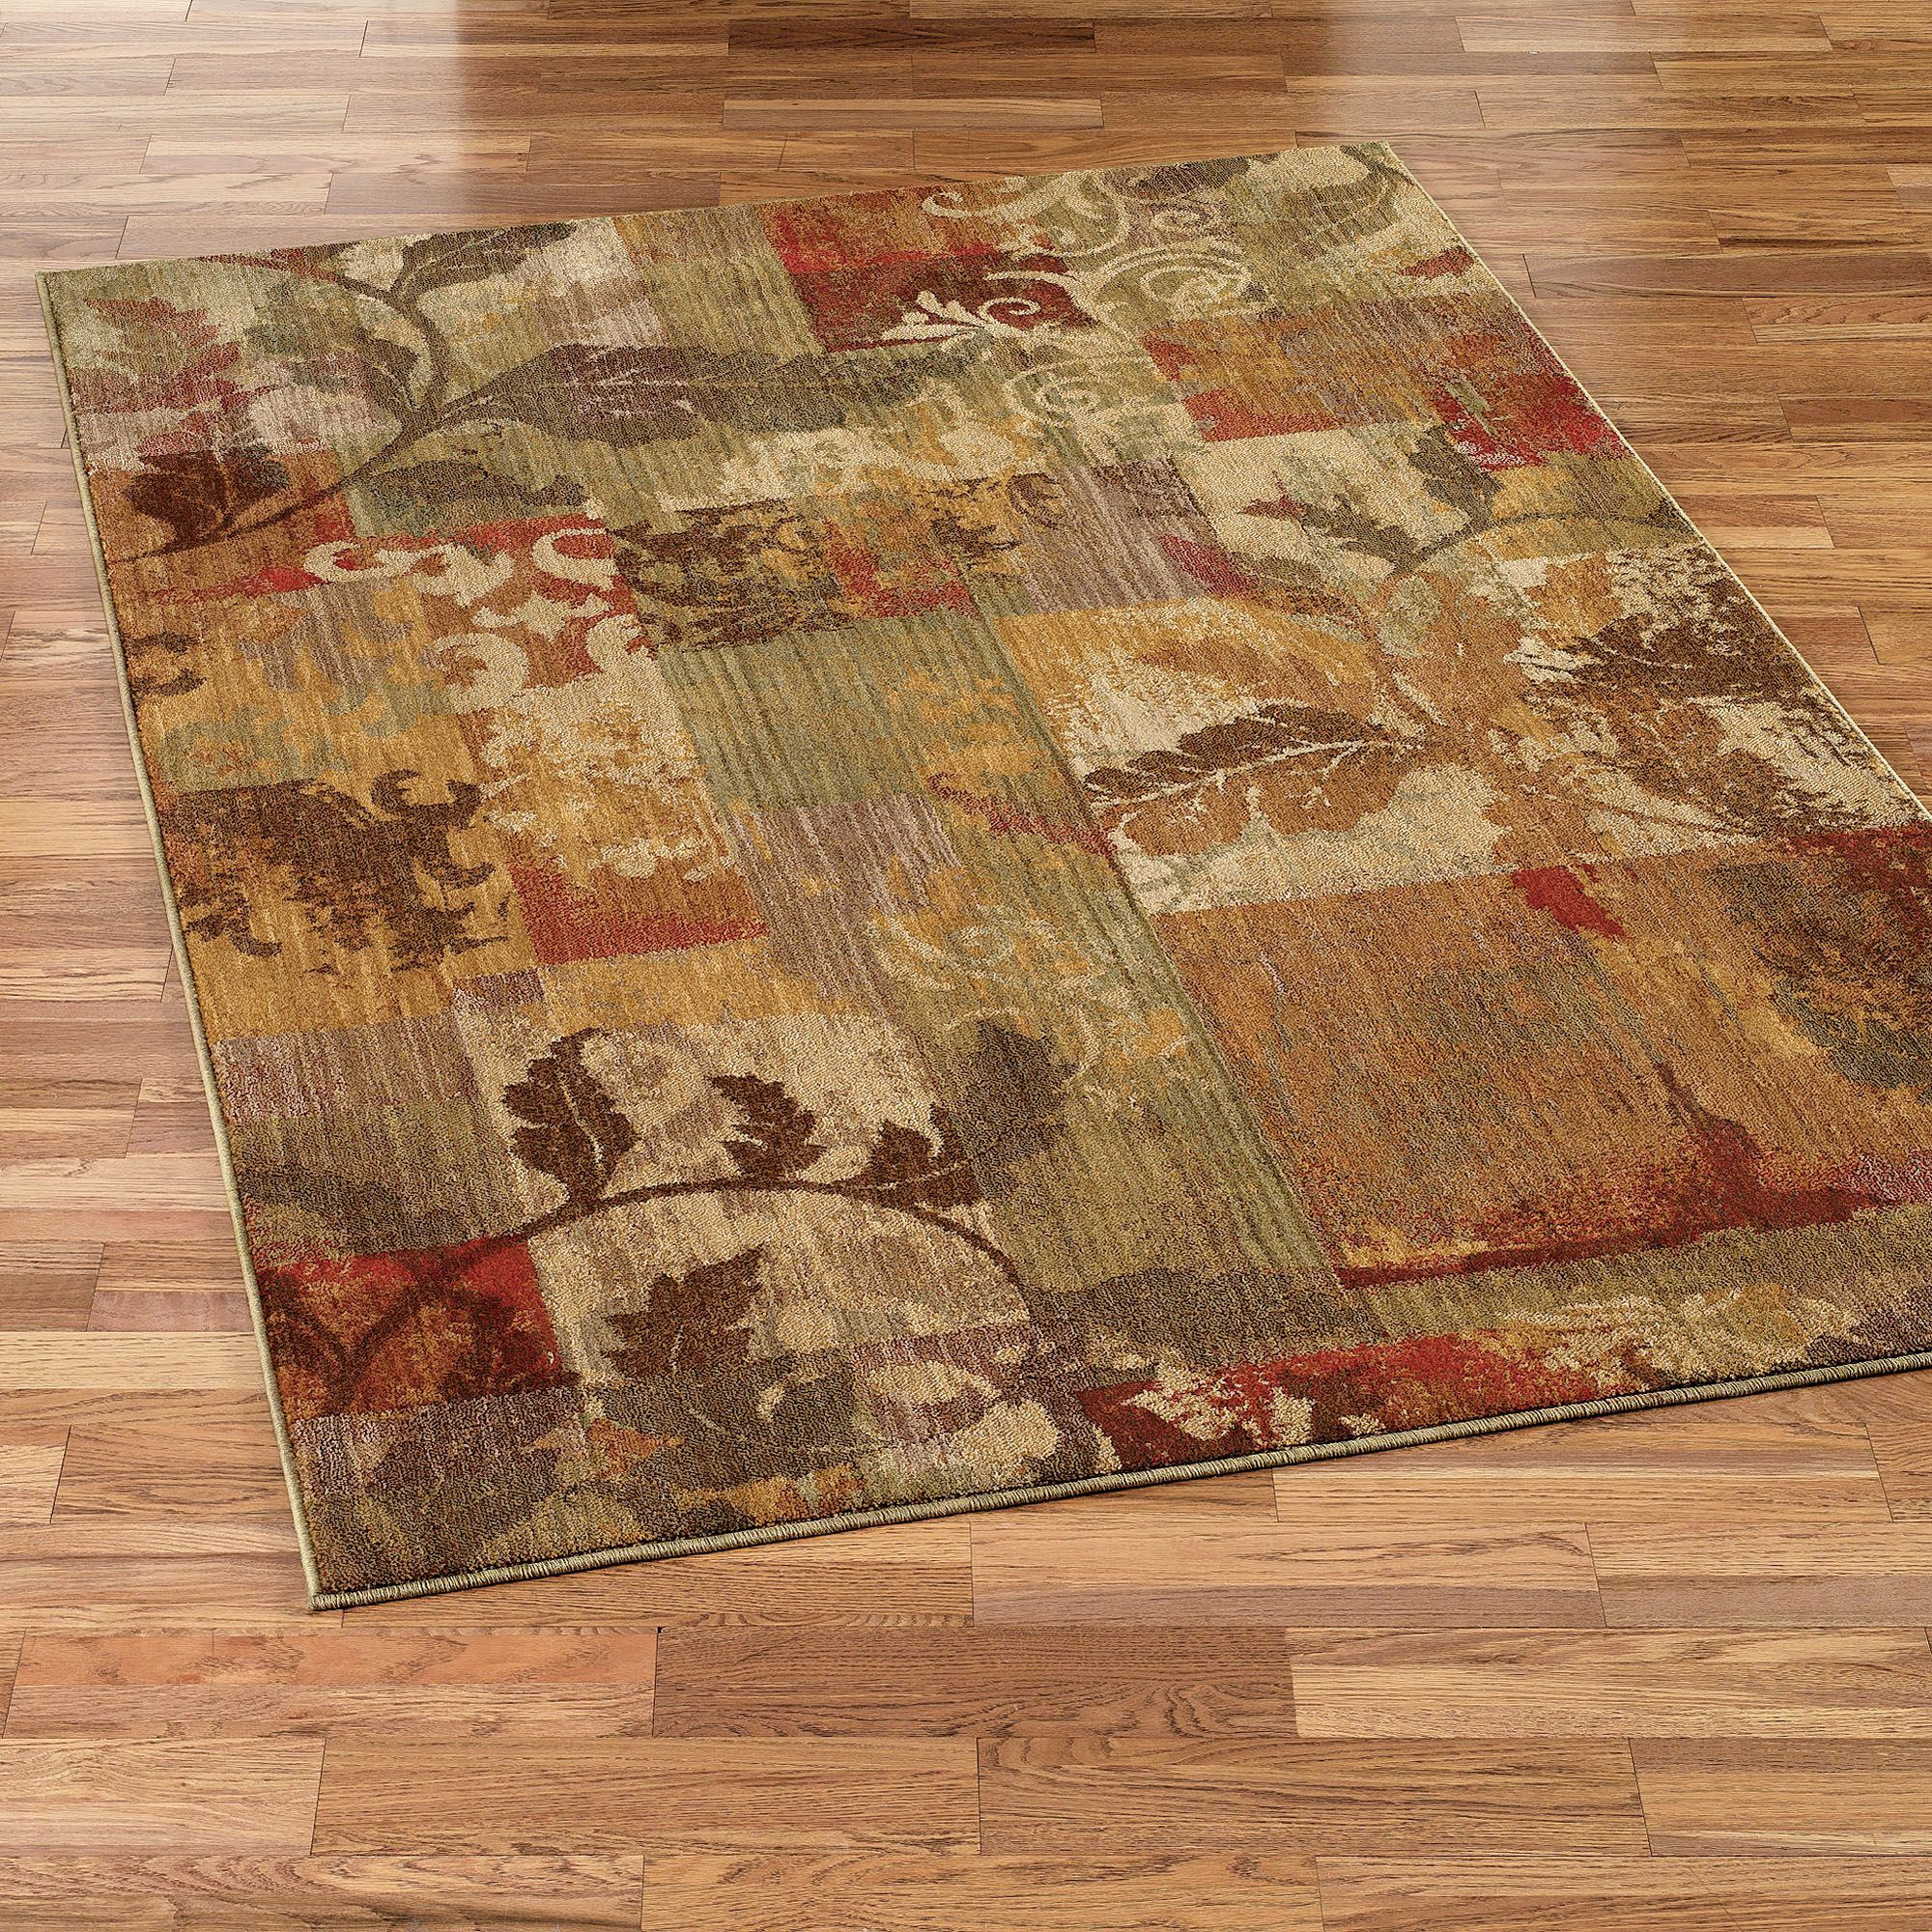 Autumn Allure Area Rugs